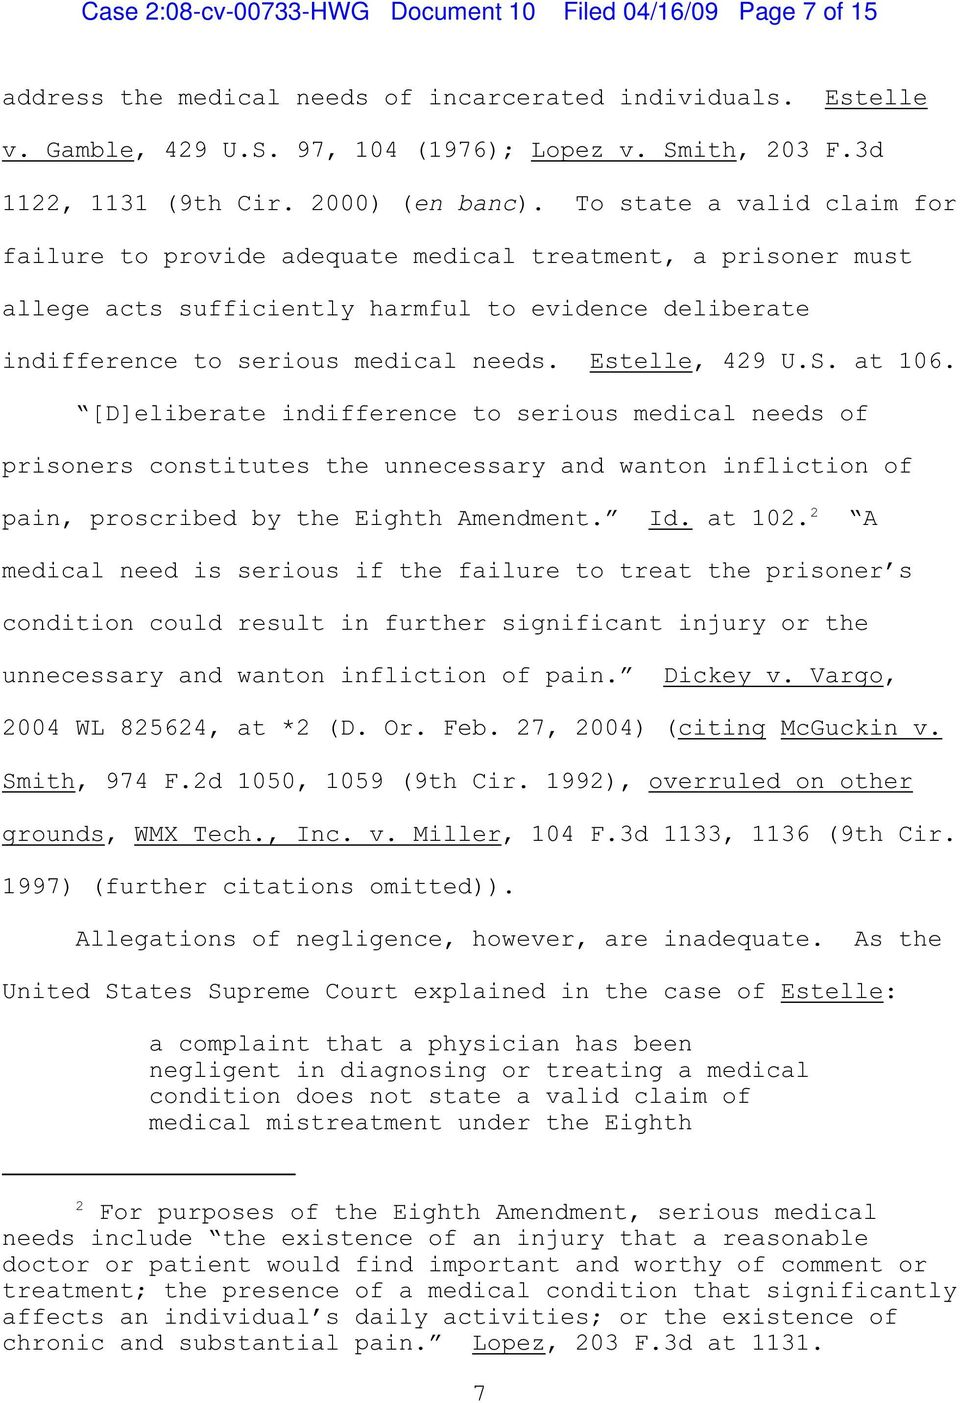 To state a valid claim for failure to provide adequate medical treatment, a prisoner must allege acts sufficiently harmful to evidence deliberate indifference to serious medical needs. Estelle, 429 U.